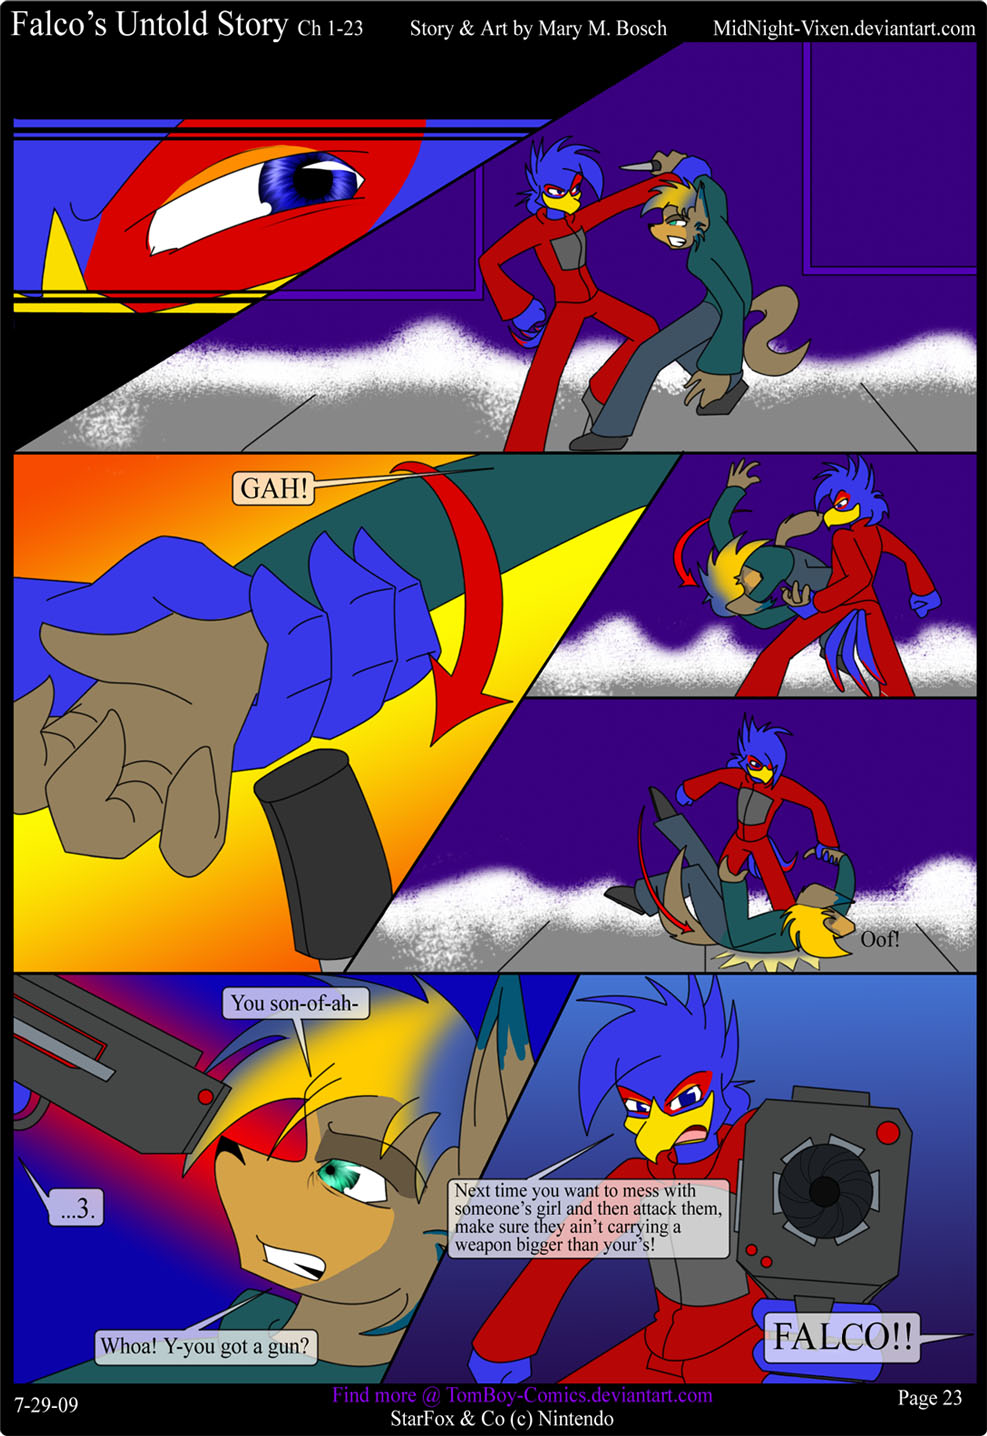 Falco's Untold Story Ch.1-23 by TomBoy-Comics